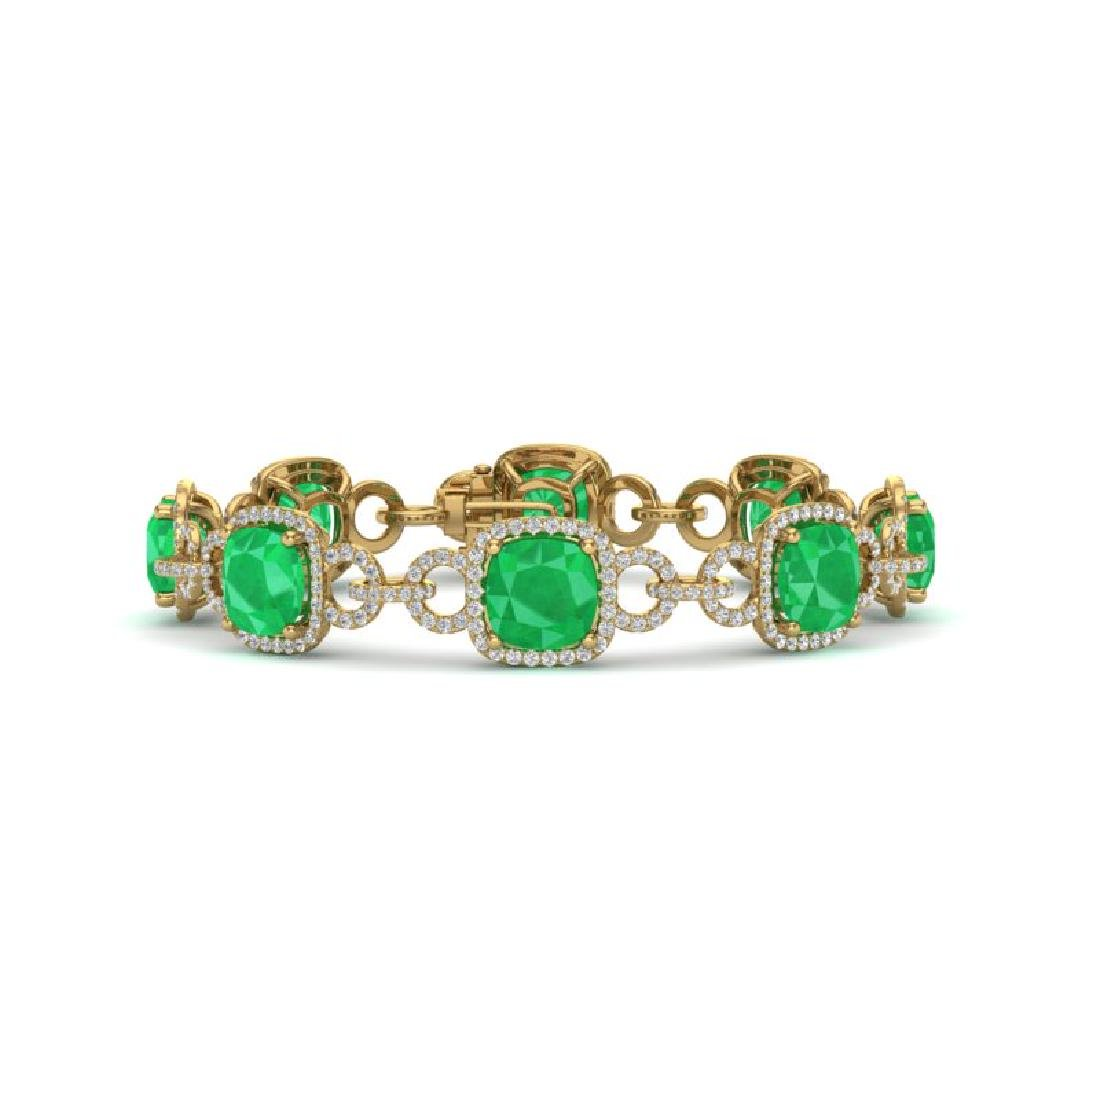 25 CTW Emerald & VS/SI Diamond Bracelet 14K Yellow Gold